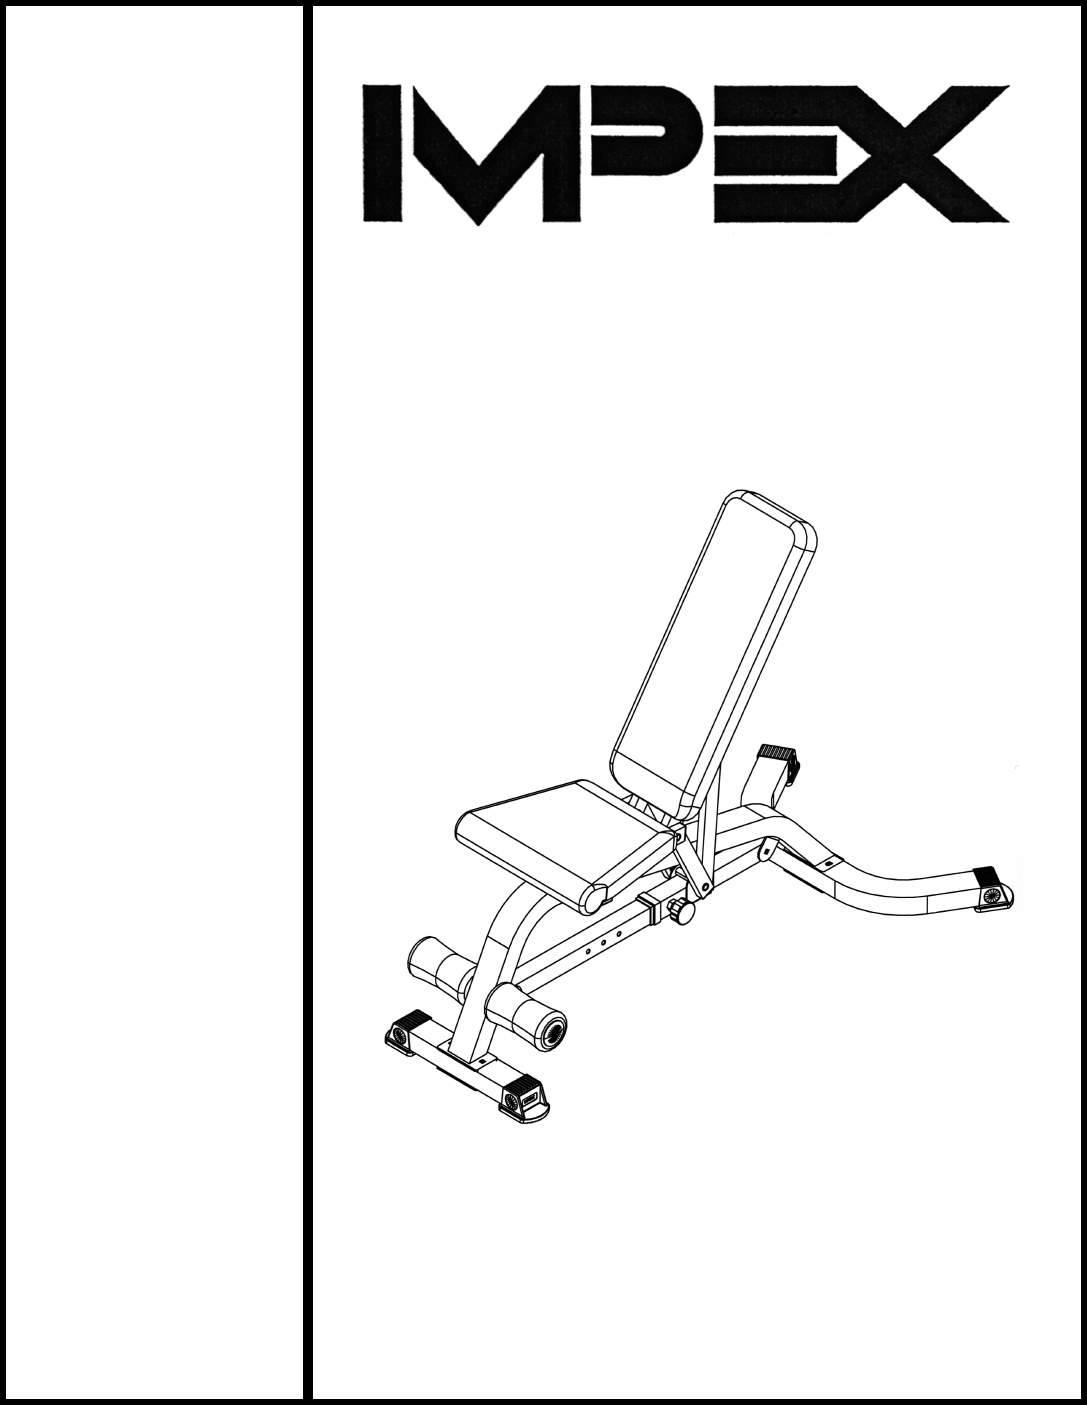 Impex IGS-6900 Home Gym User Manual